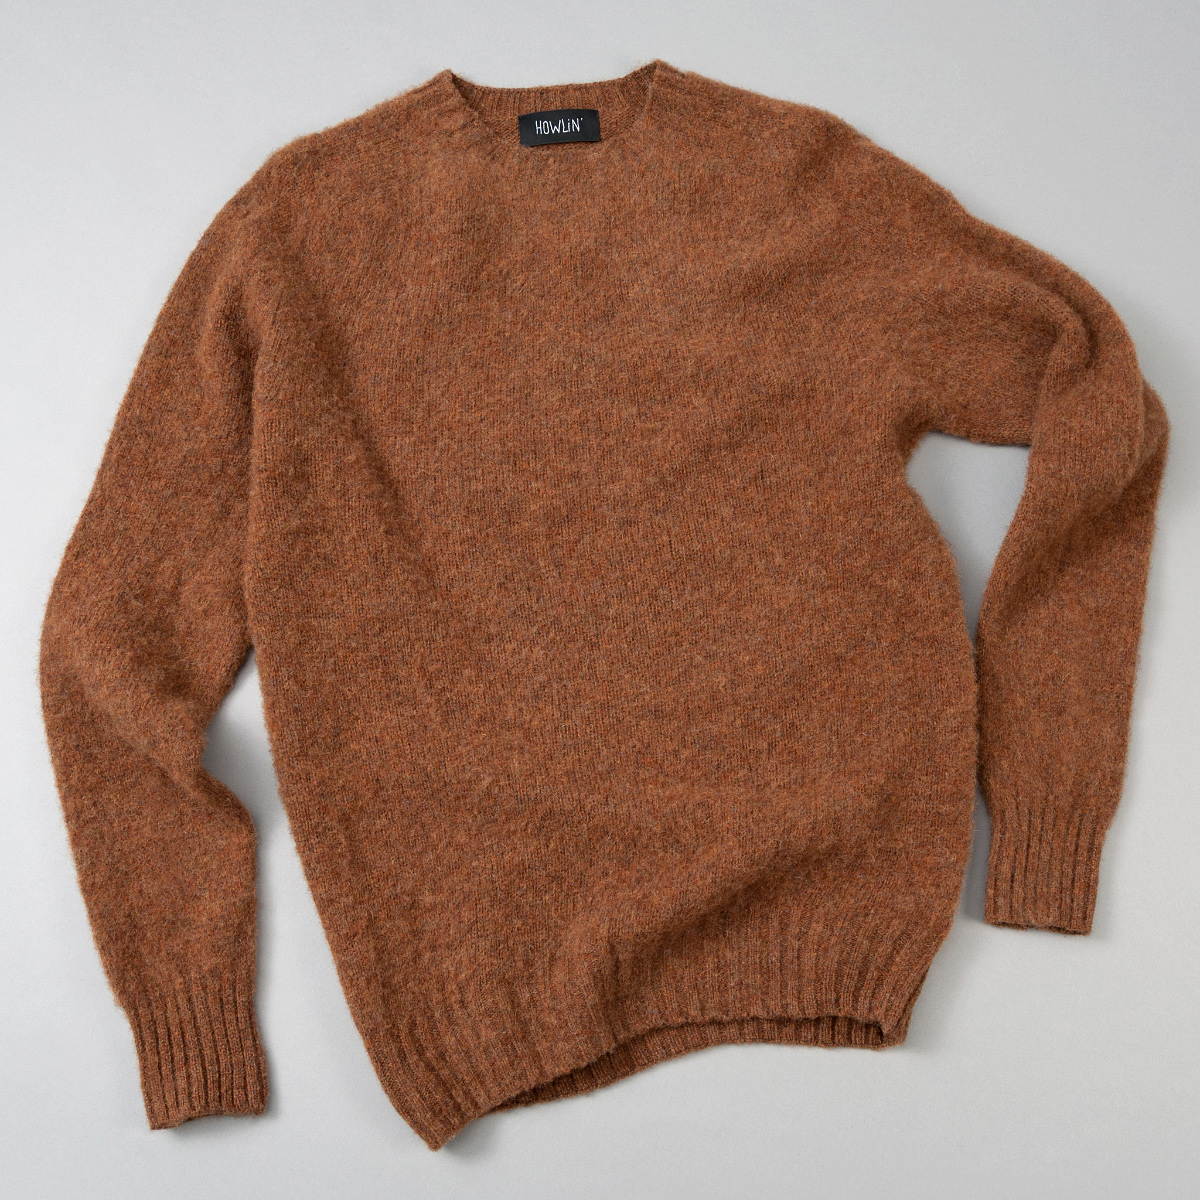 Howlin Birth of the Cool Sweater, Tobacco